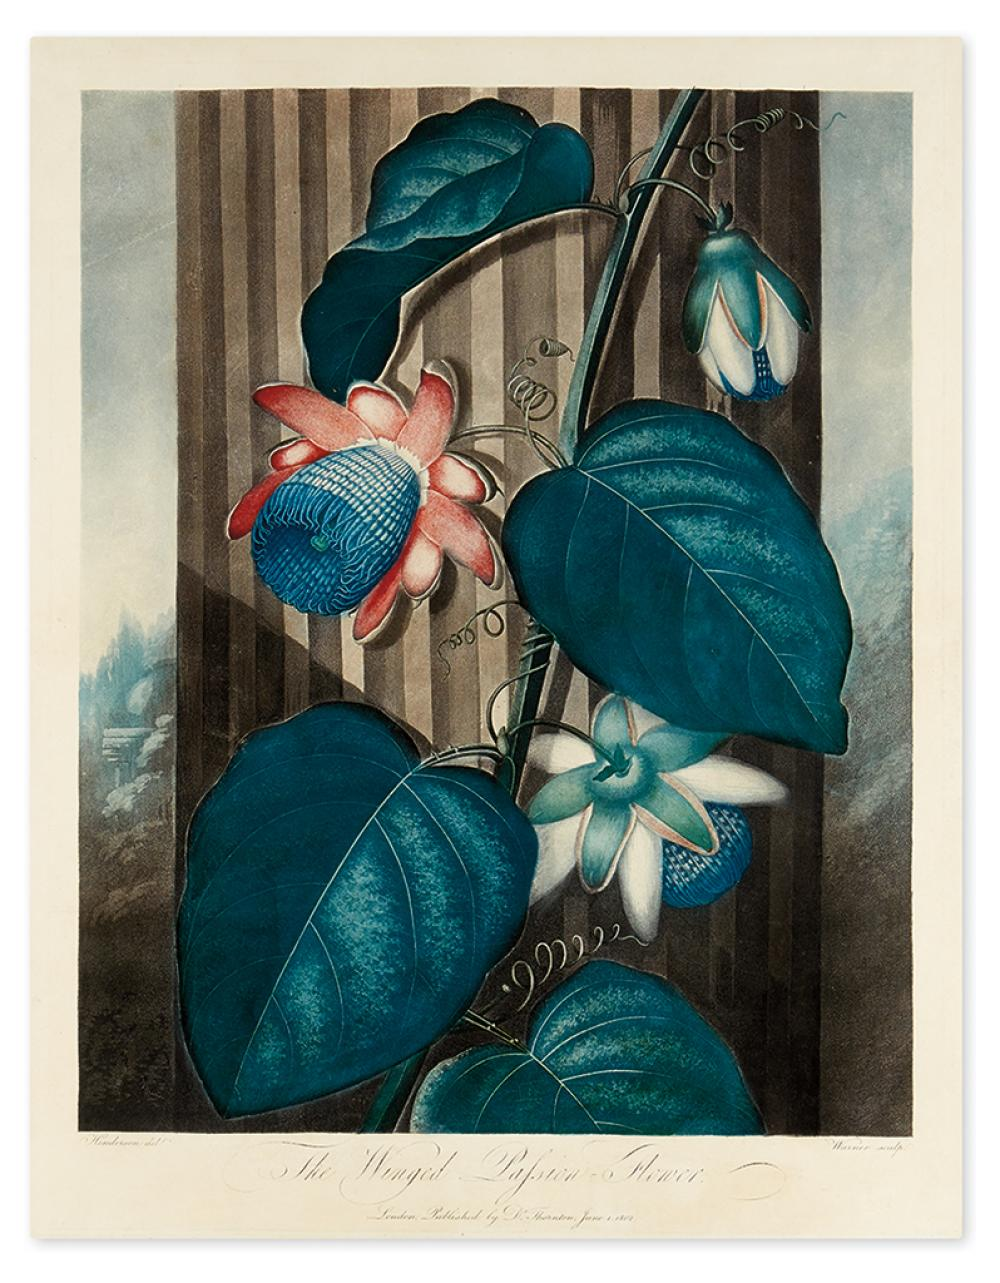 THORNTON, ROBERT JOHN. The Winged Passion-Flower.